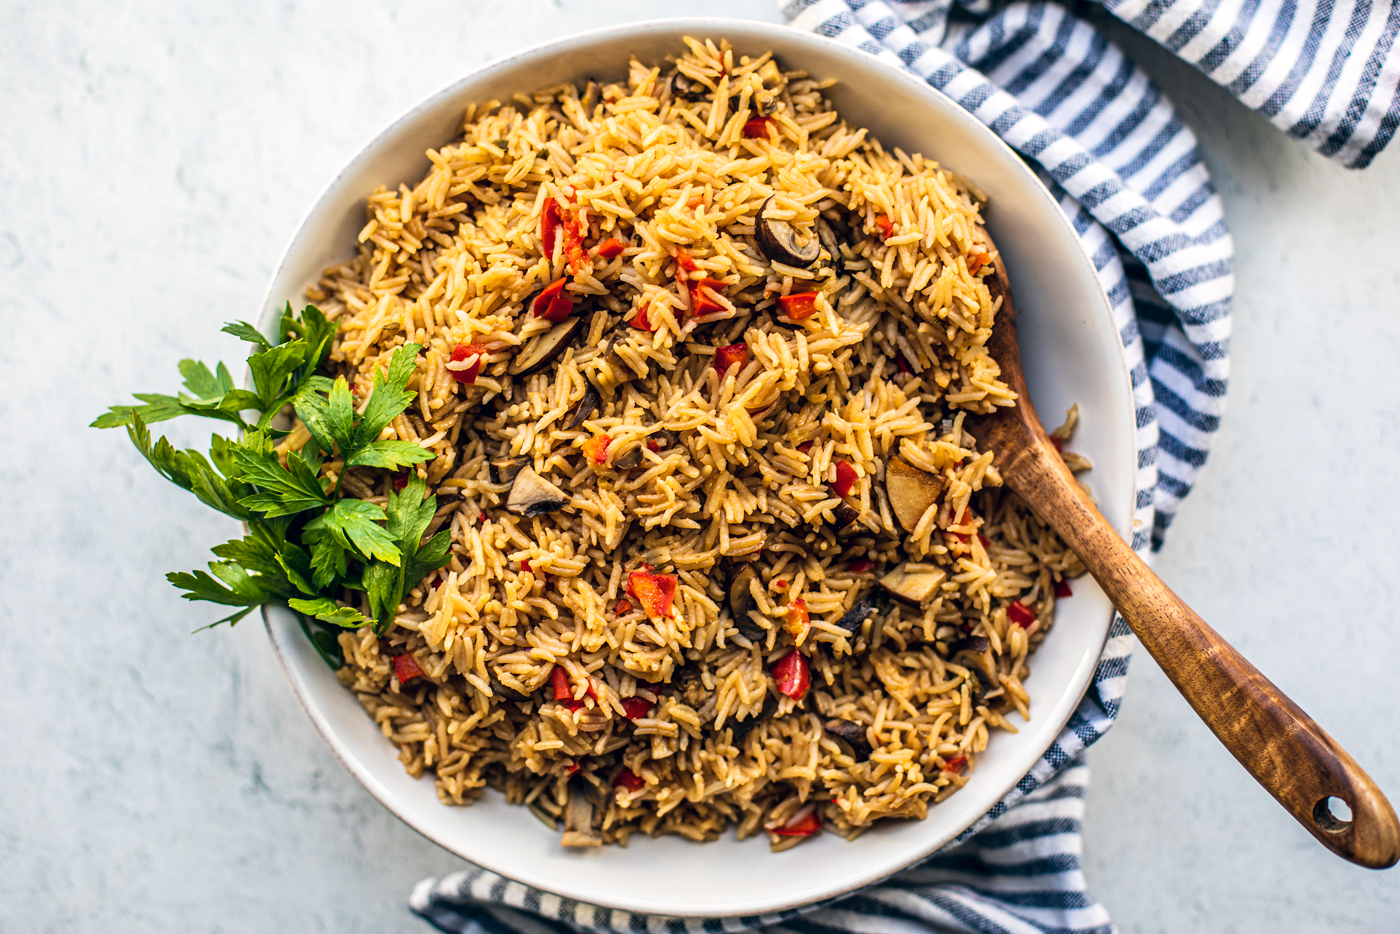 Serving bowl full of rice pilaf with a wooden spoon and blue and white striped hand towel underneath.